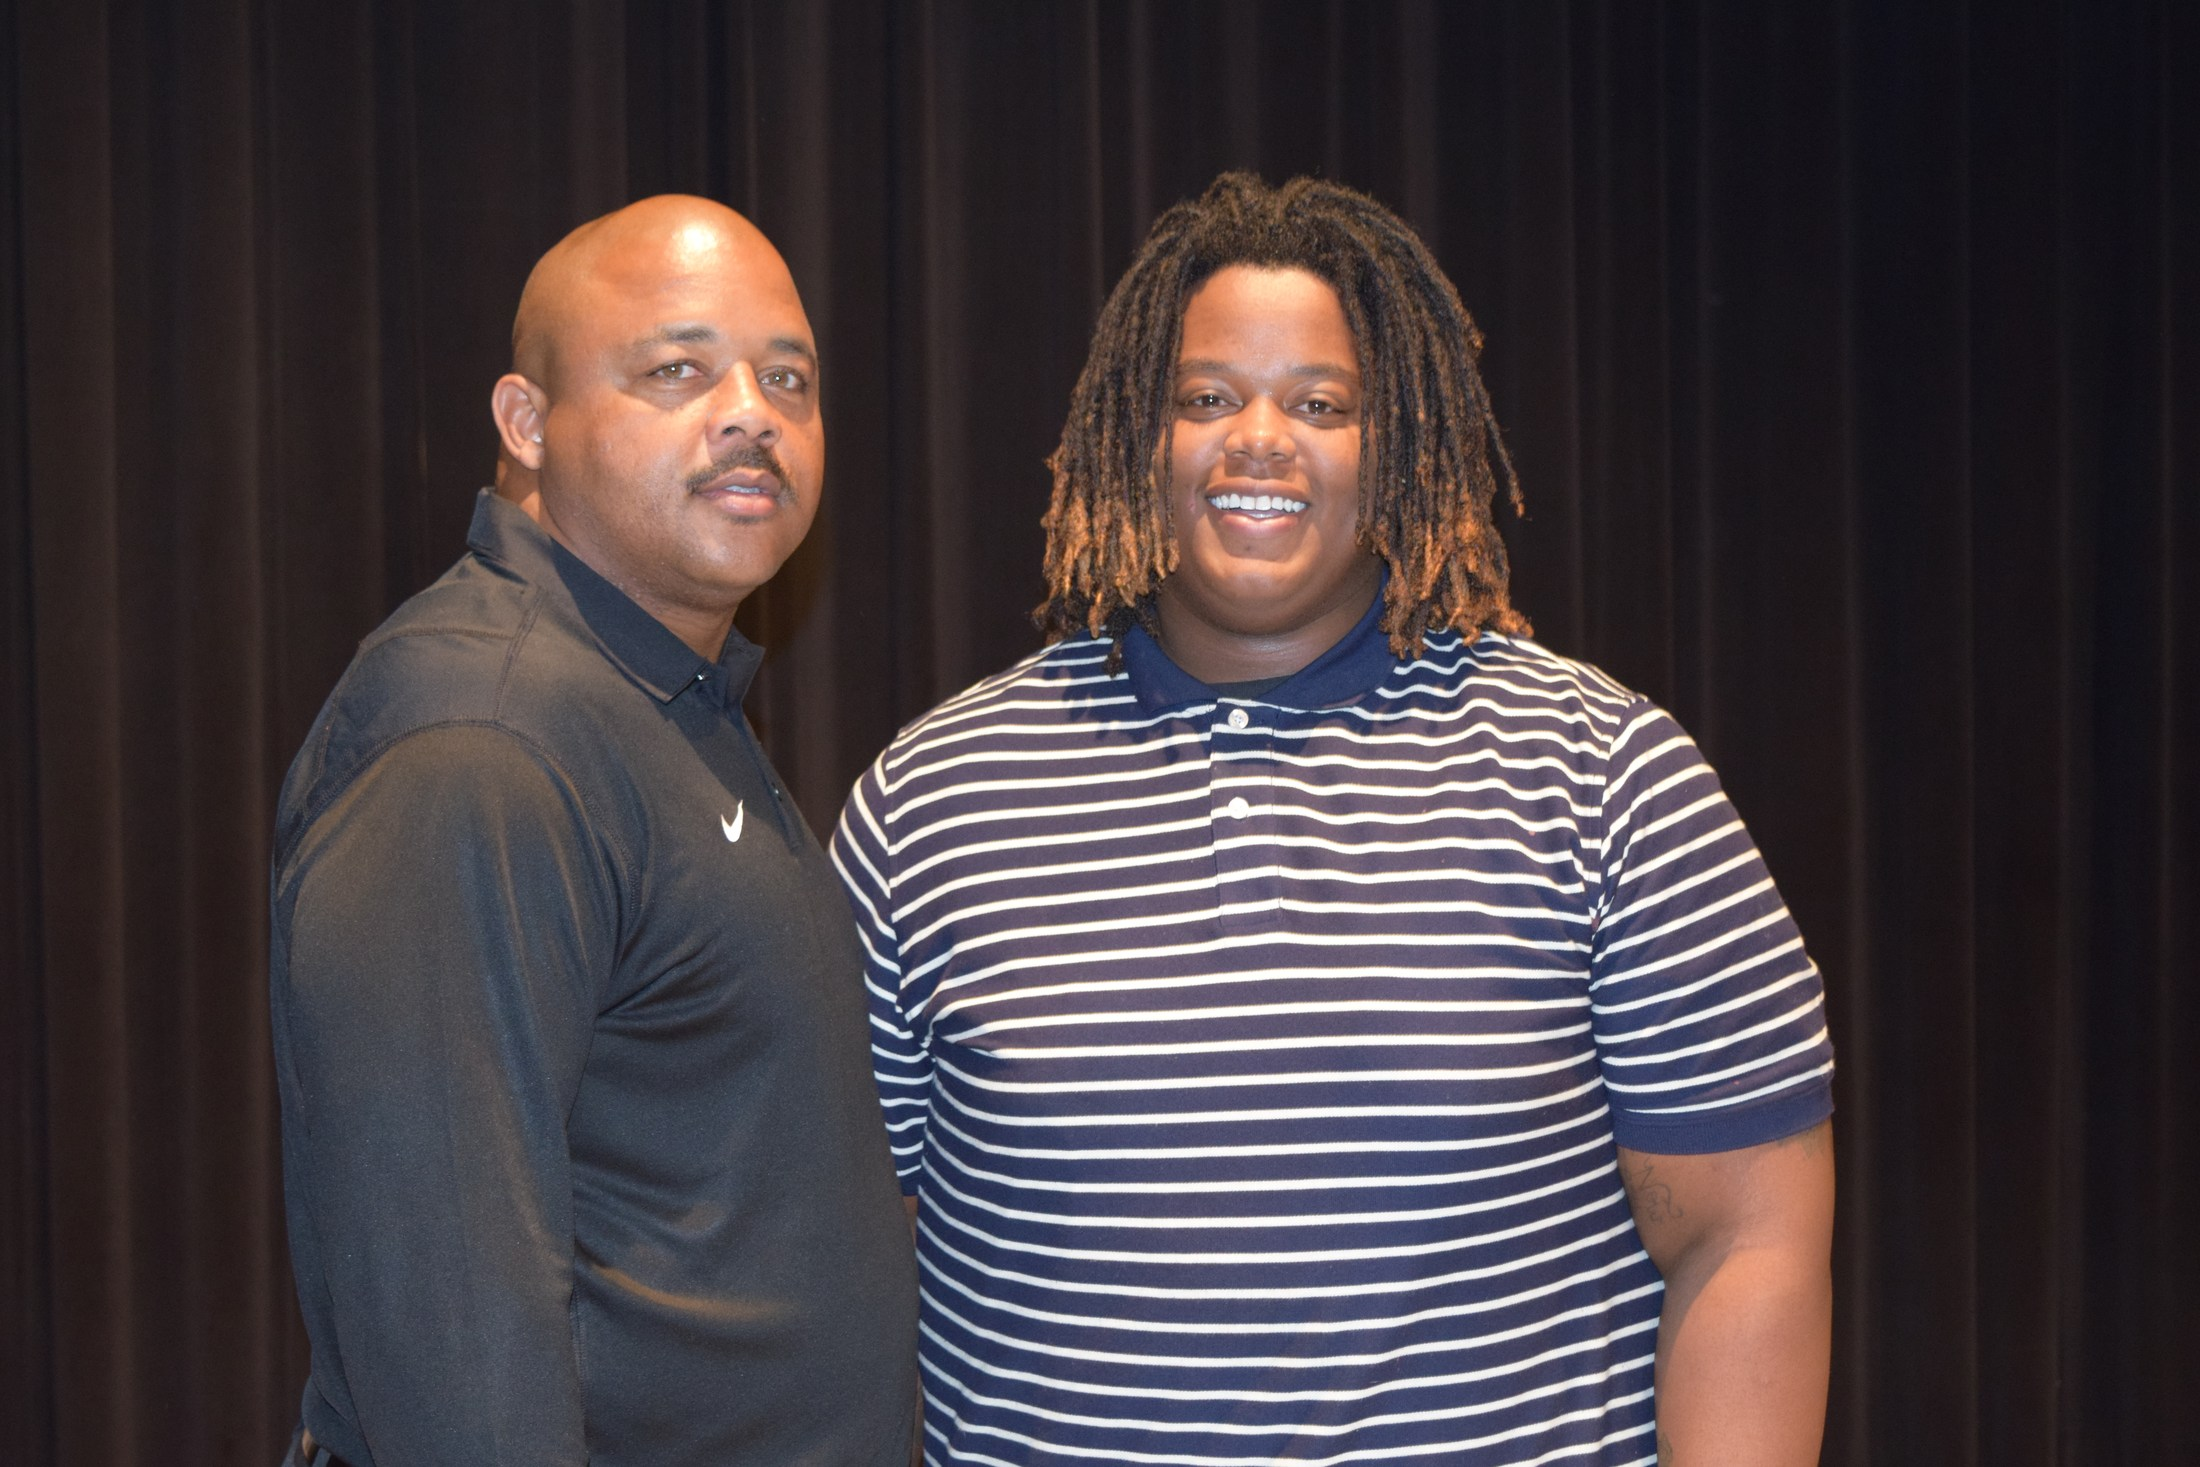 Coach Johnson and student on signing day